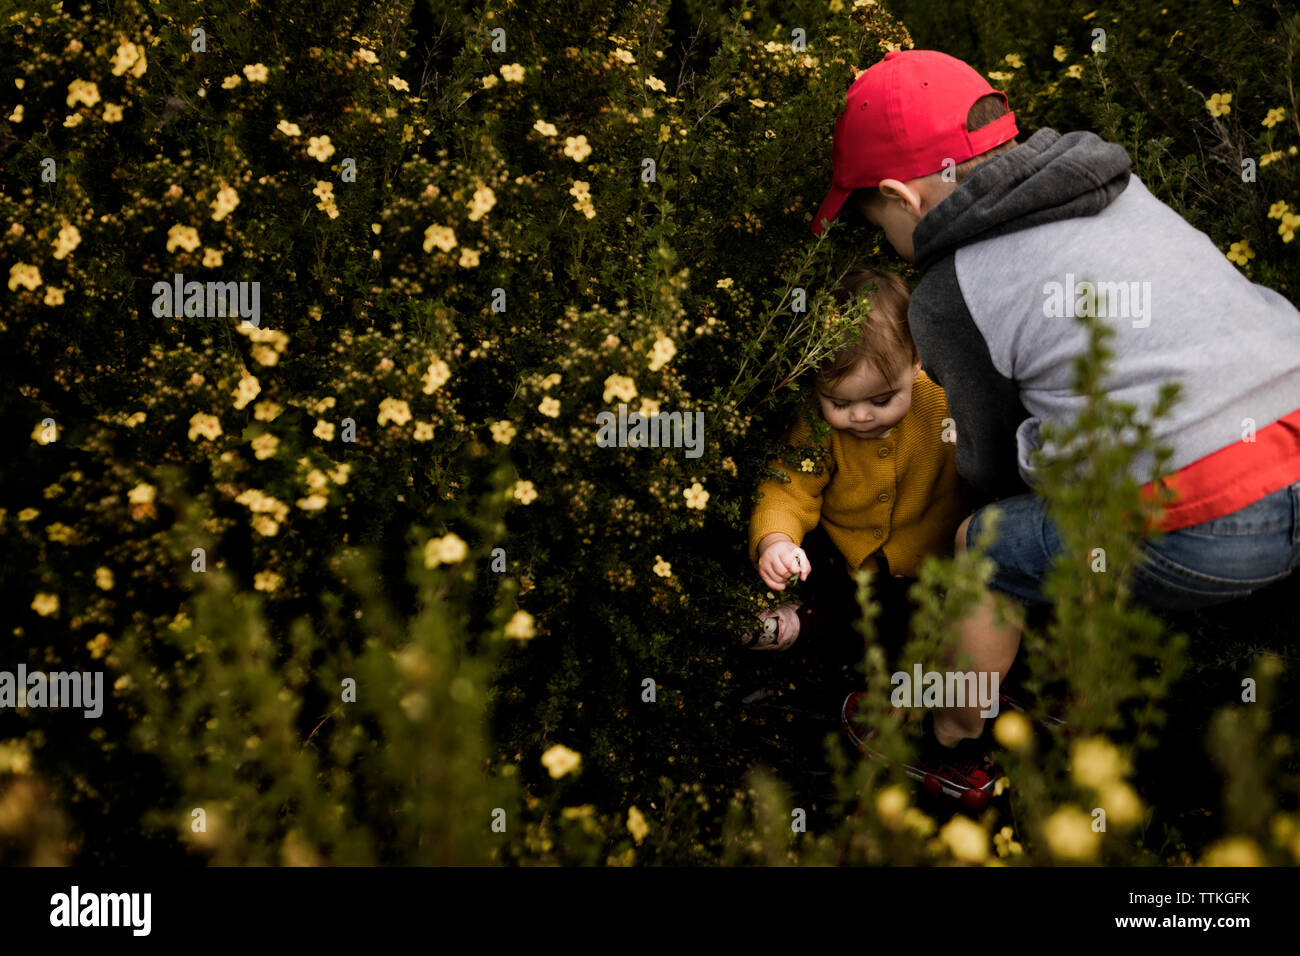 Boy helping his little sister up in a flower bush Stock Photo